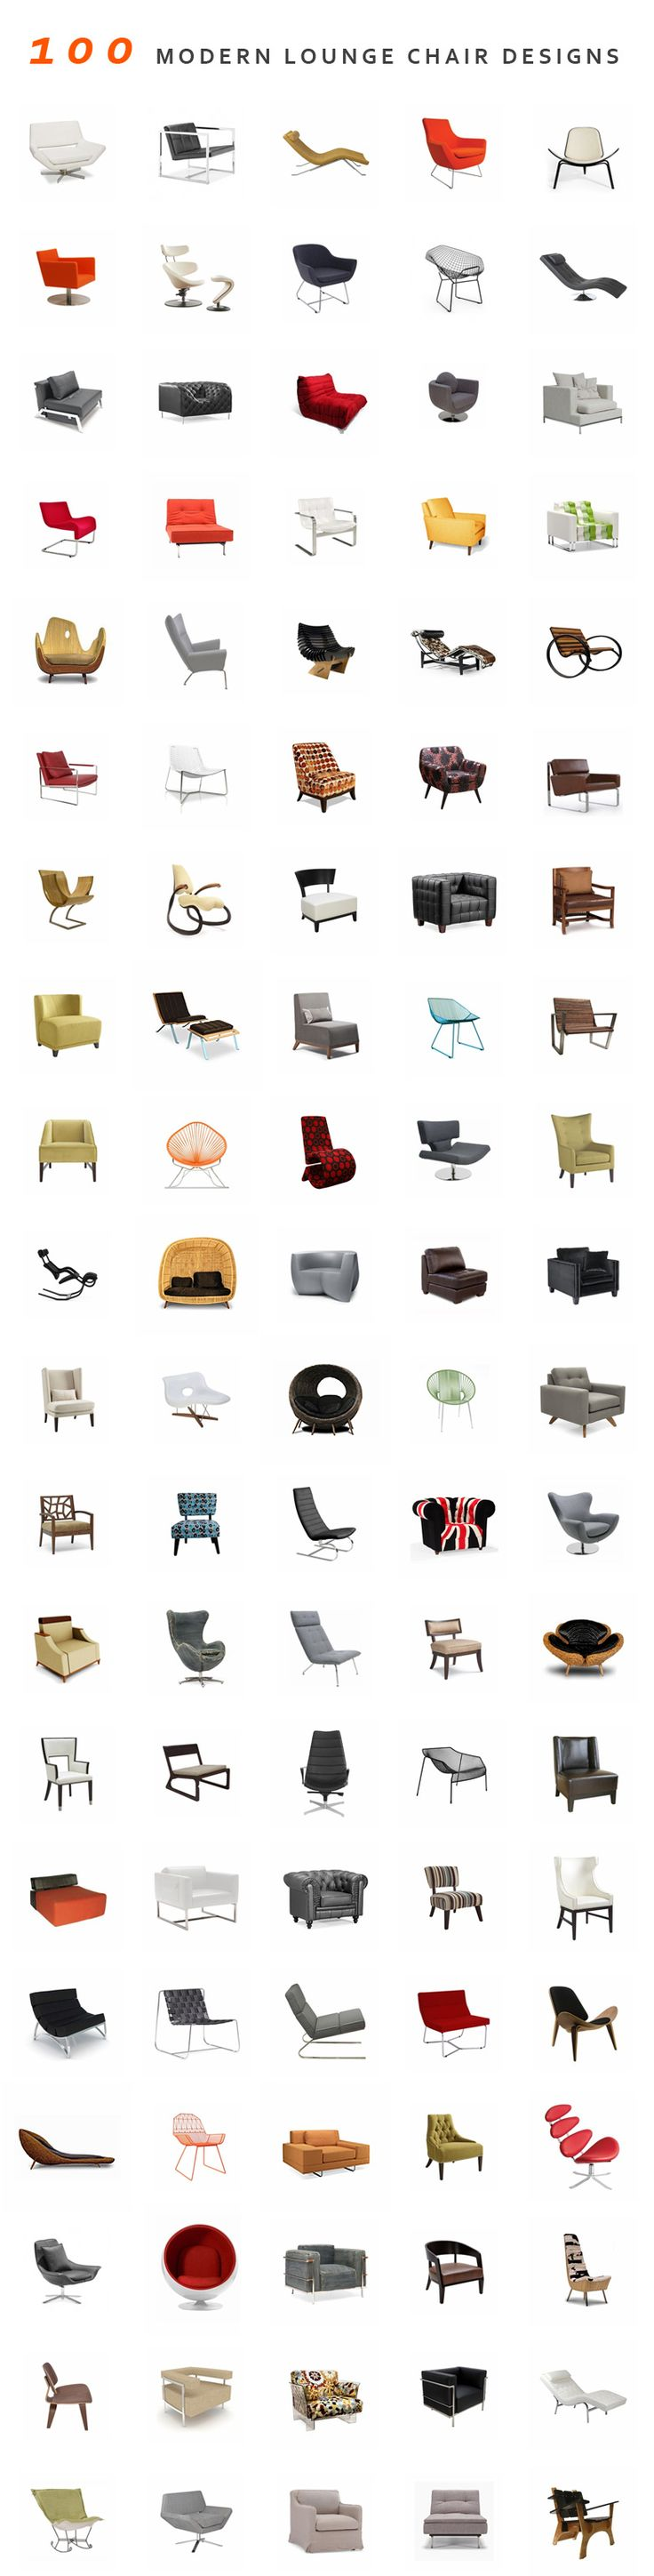 100 Modern Lounge Chair Designs << I'm going to have to parse through this and, of course, I'm skeptical....